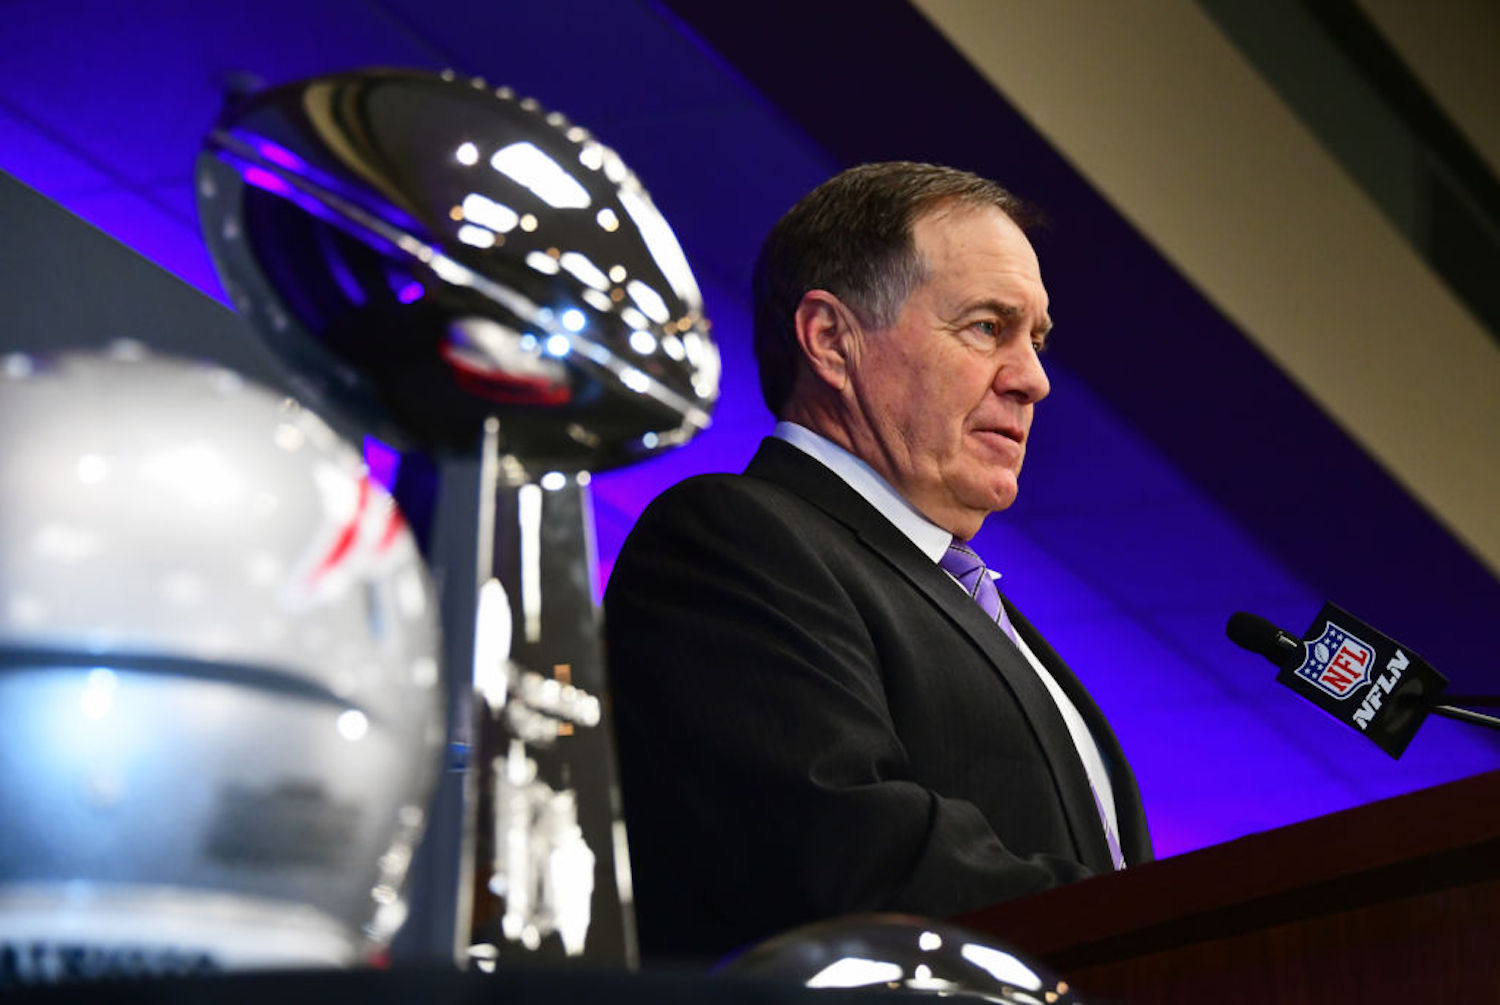 Bill Belichick always thinks outside the box, but his latest signing of a marine who hasn't played football in five years has fans stumped.